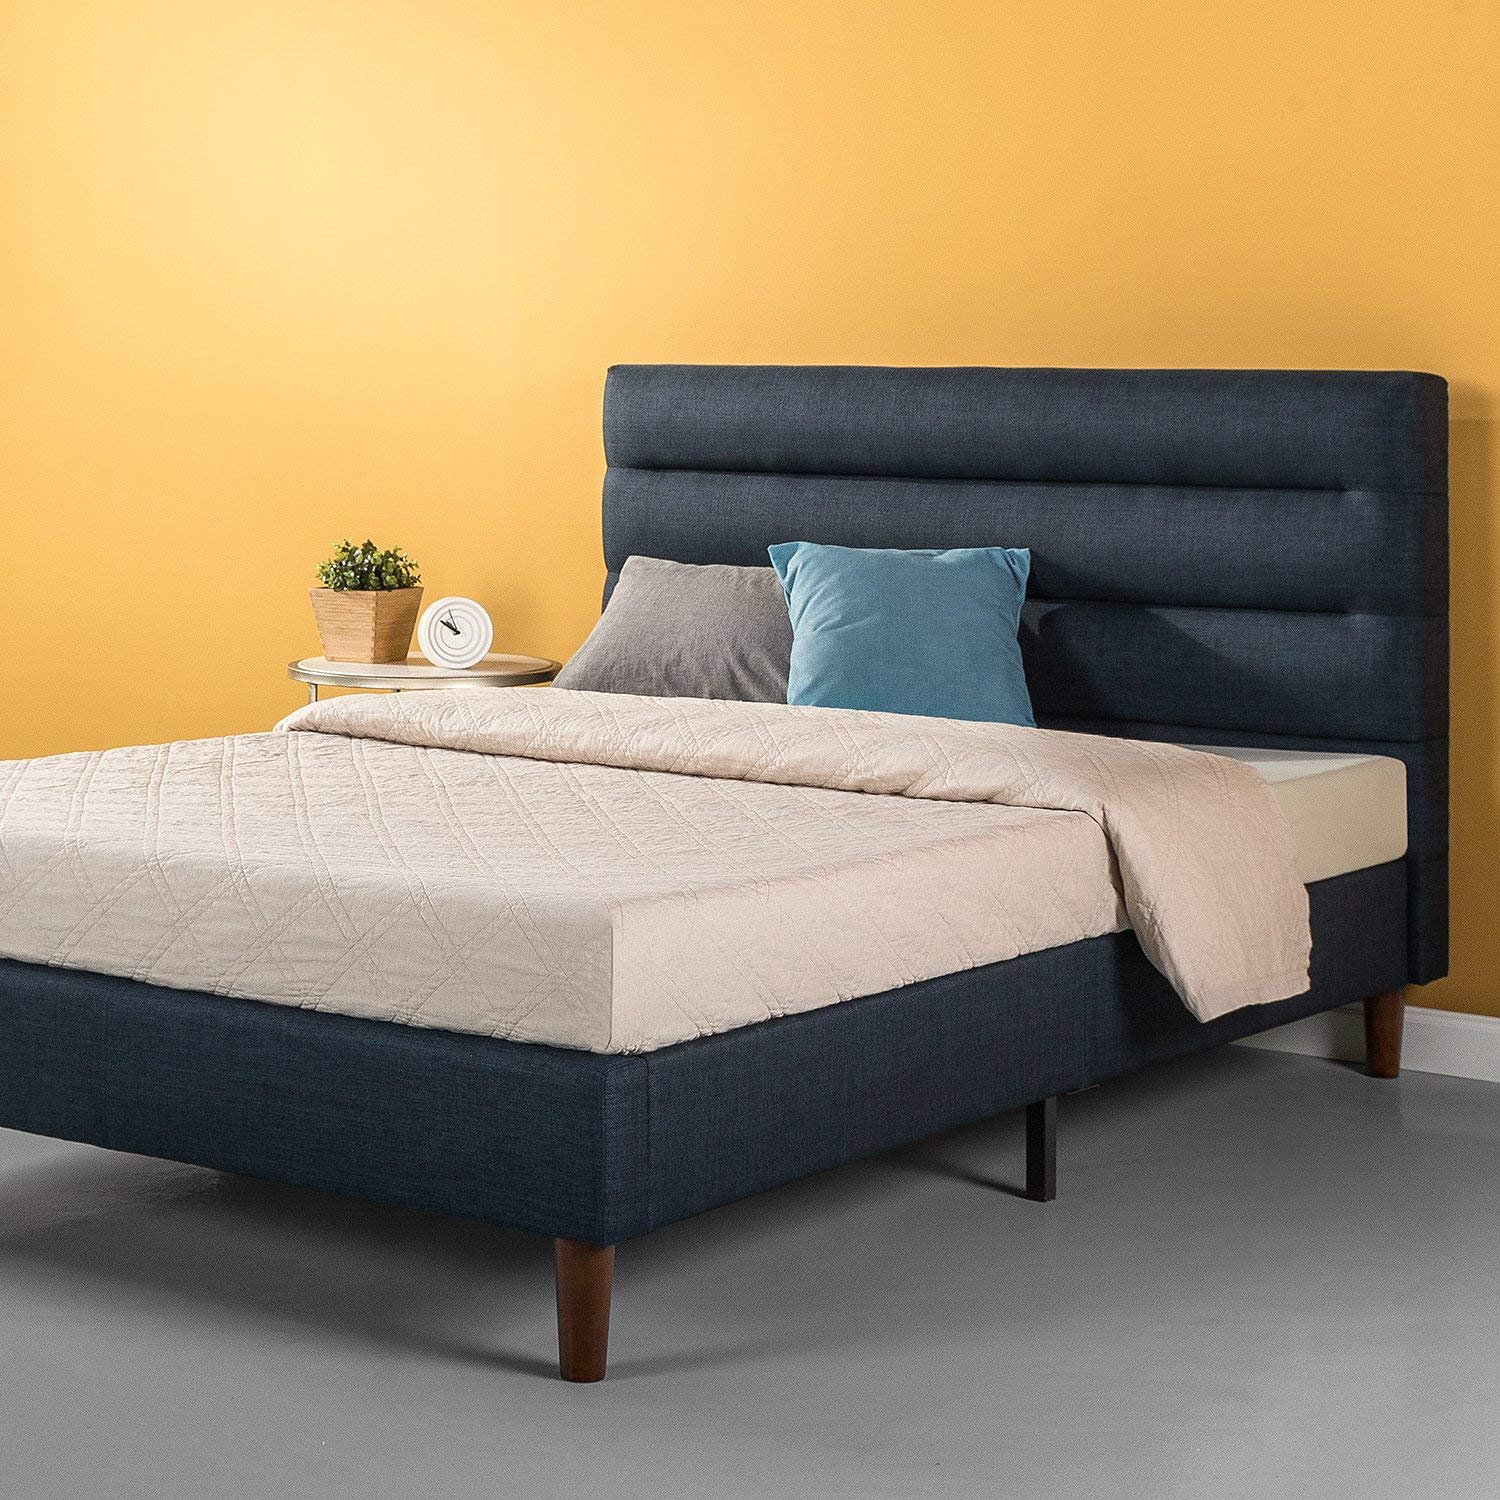 Zinus Cushioned Platform Bed